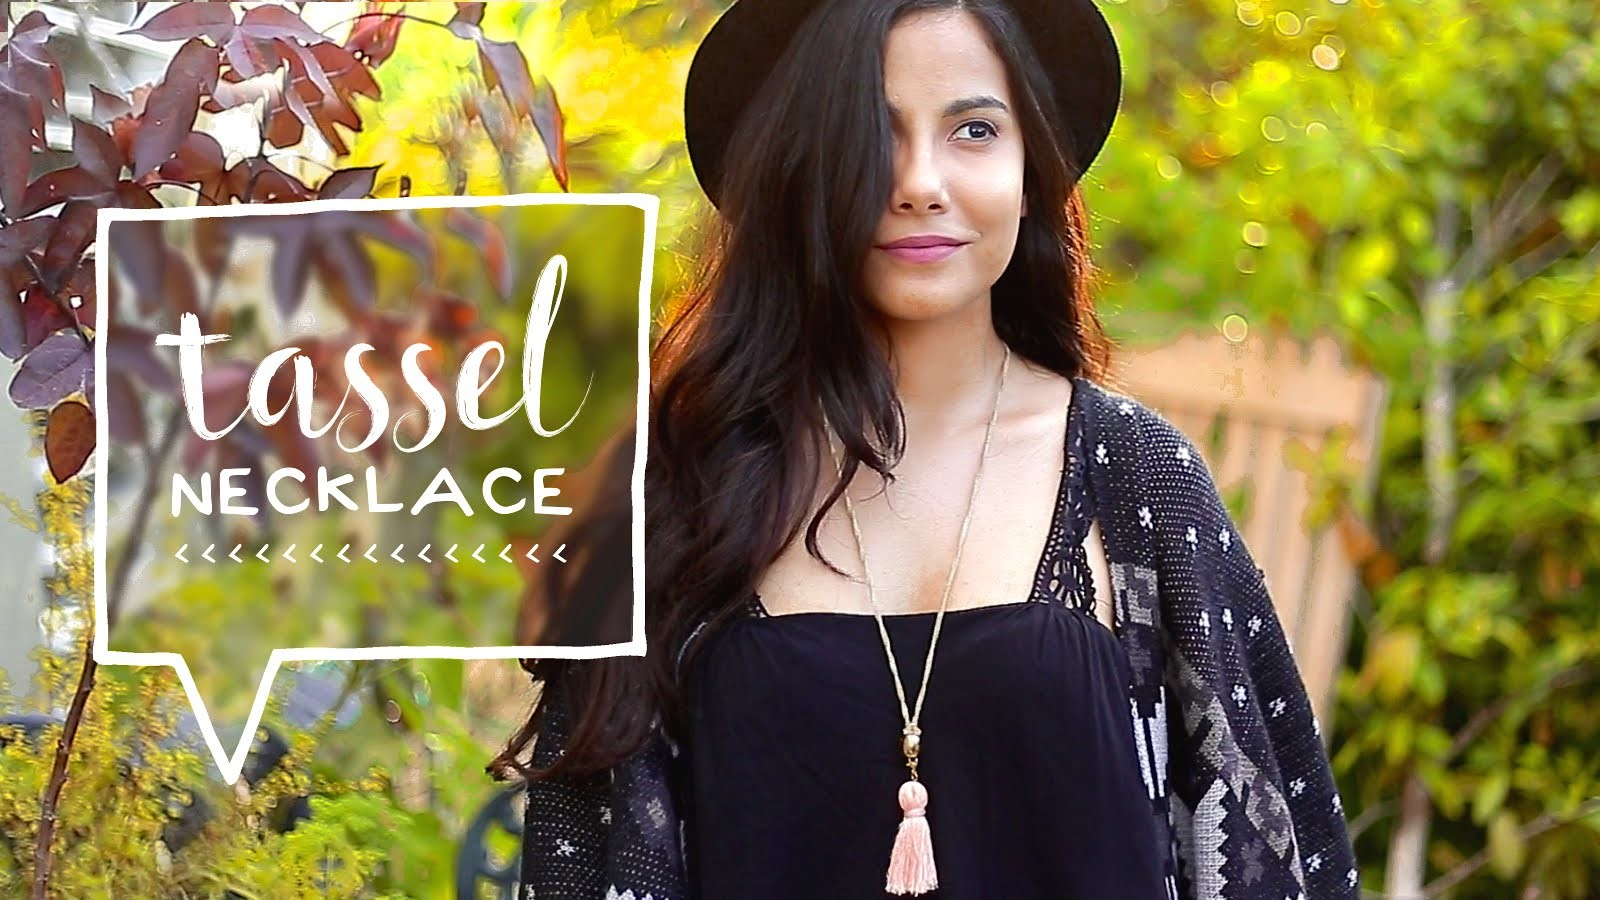 How to Make Your Own Jewelry. DIY Tassel Necklace Tutorial